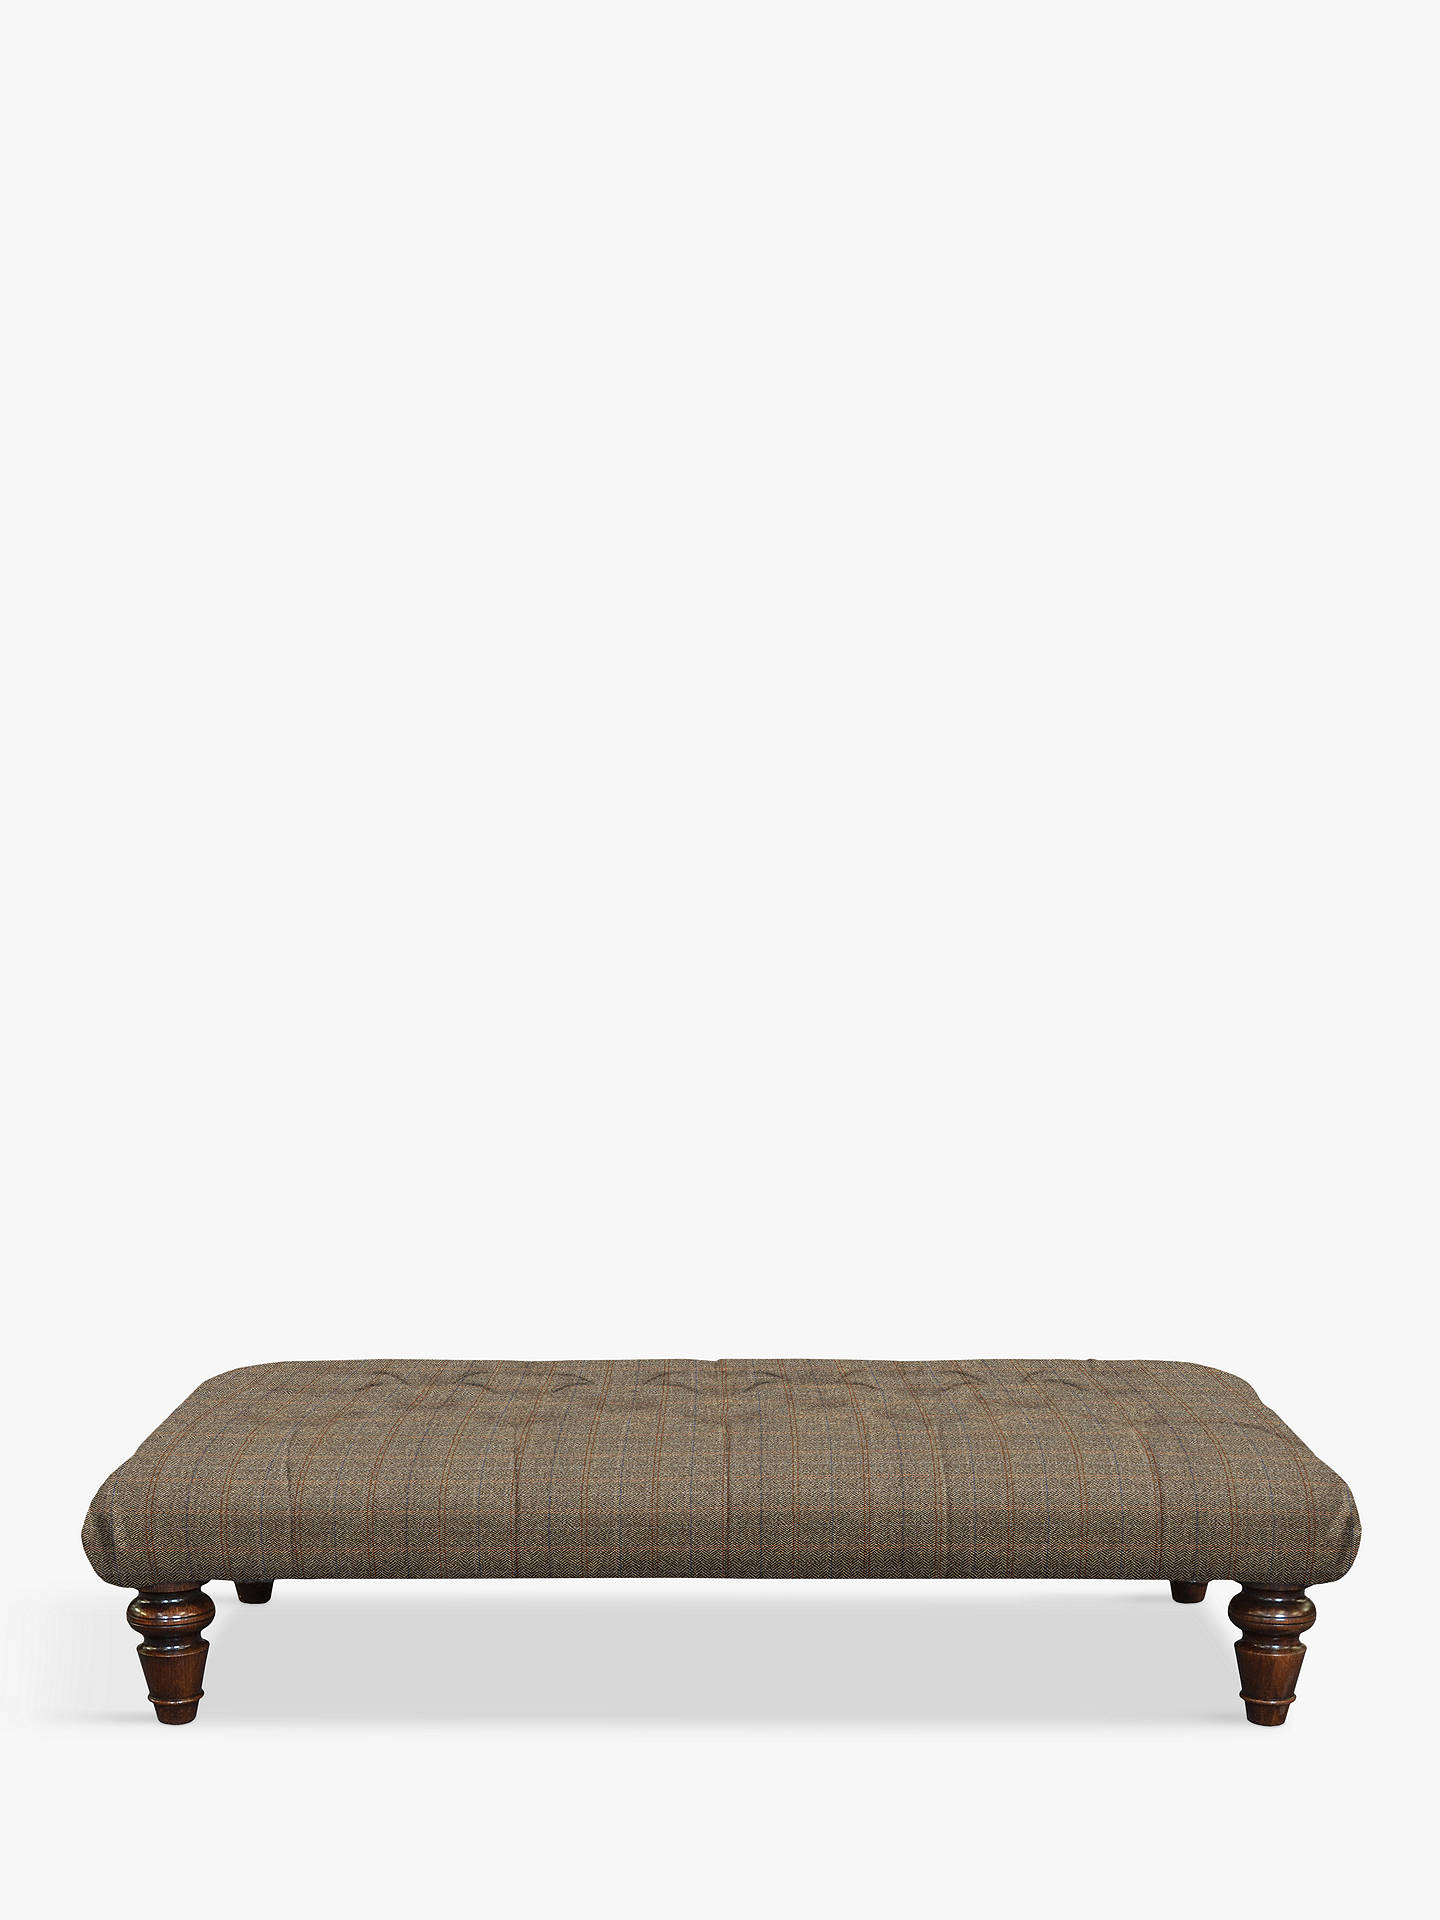 BuyTetrad Harris Tweed Lewis Large Button Footstool, Bracken/Tan Online at johnlewis.com